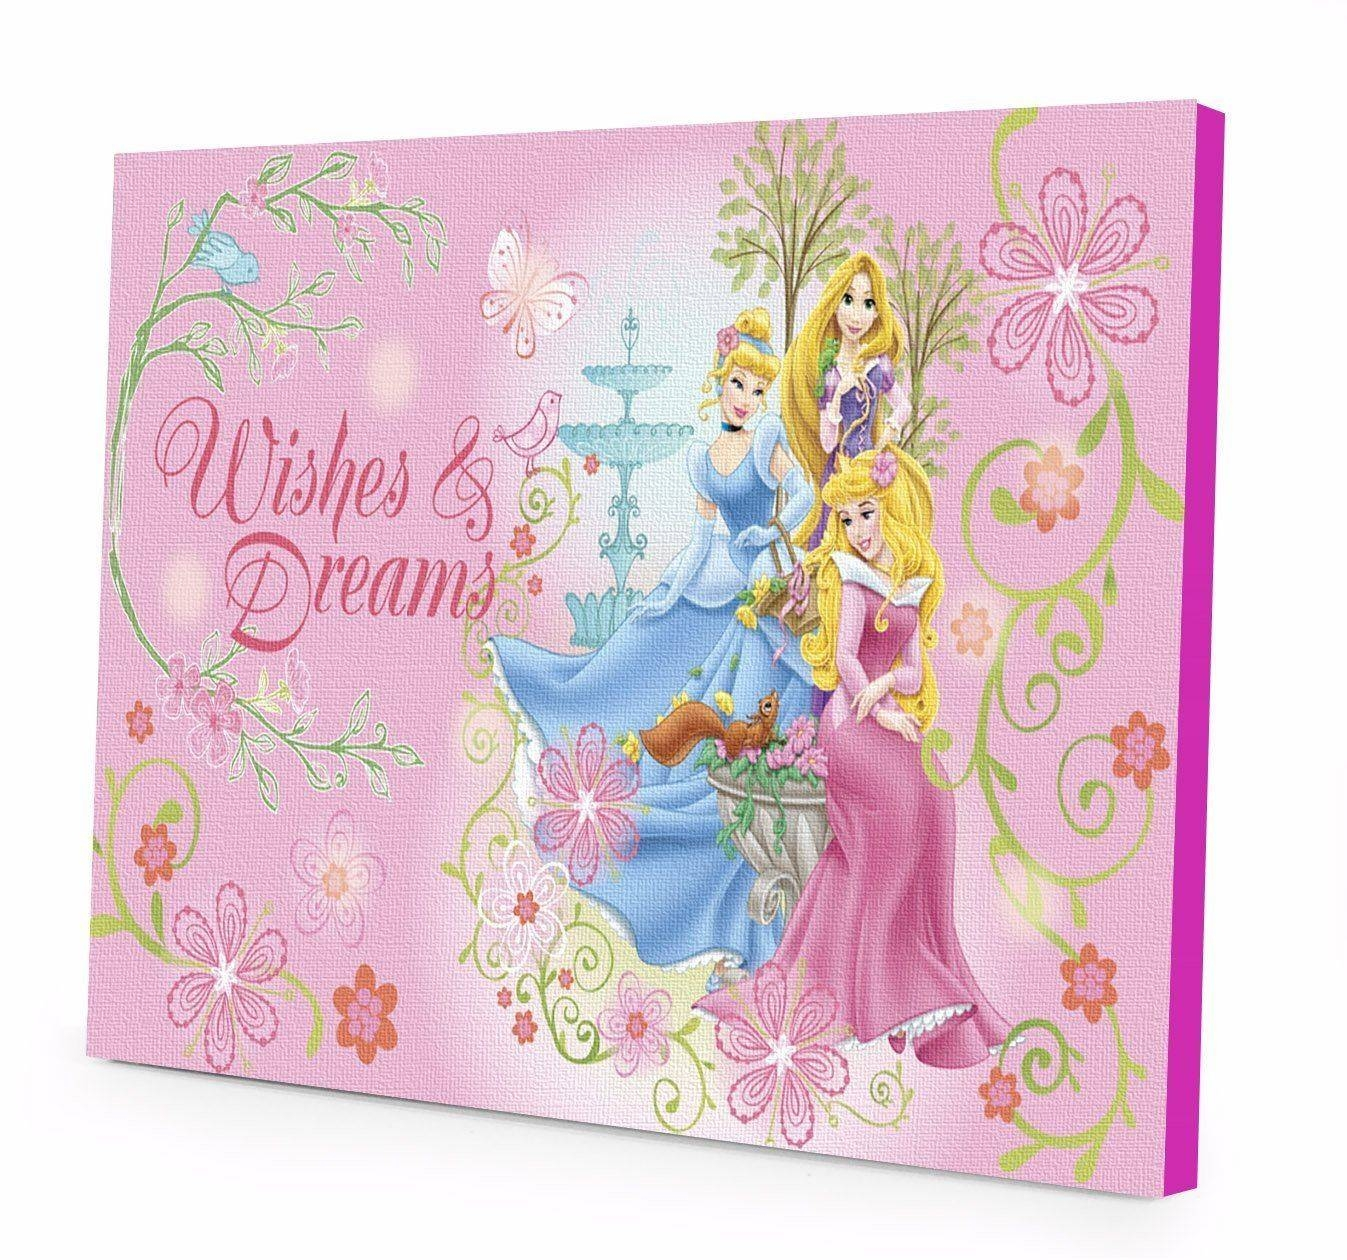 Disney Princess Wishes Dreams Led Light Up Canvas Wall Art Wk In Latest Princess Canvas Wall Art (View 9 of 20)